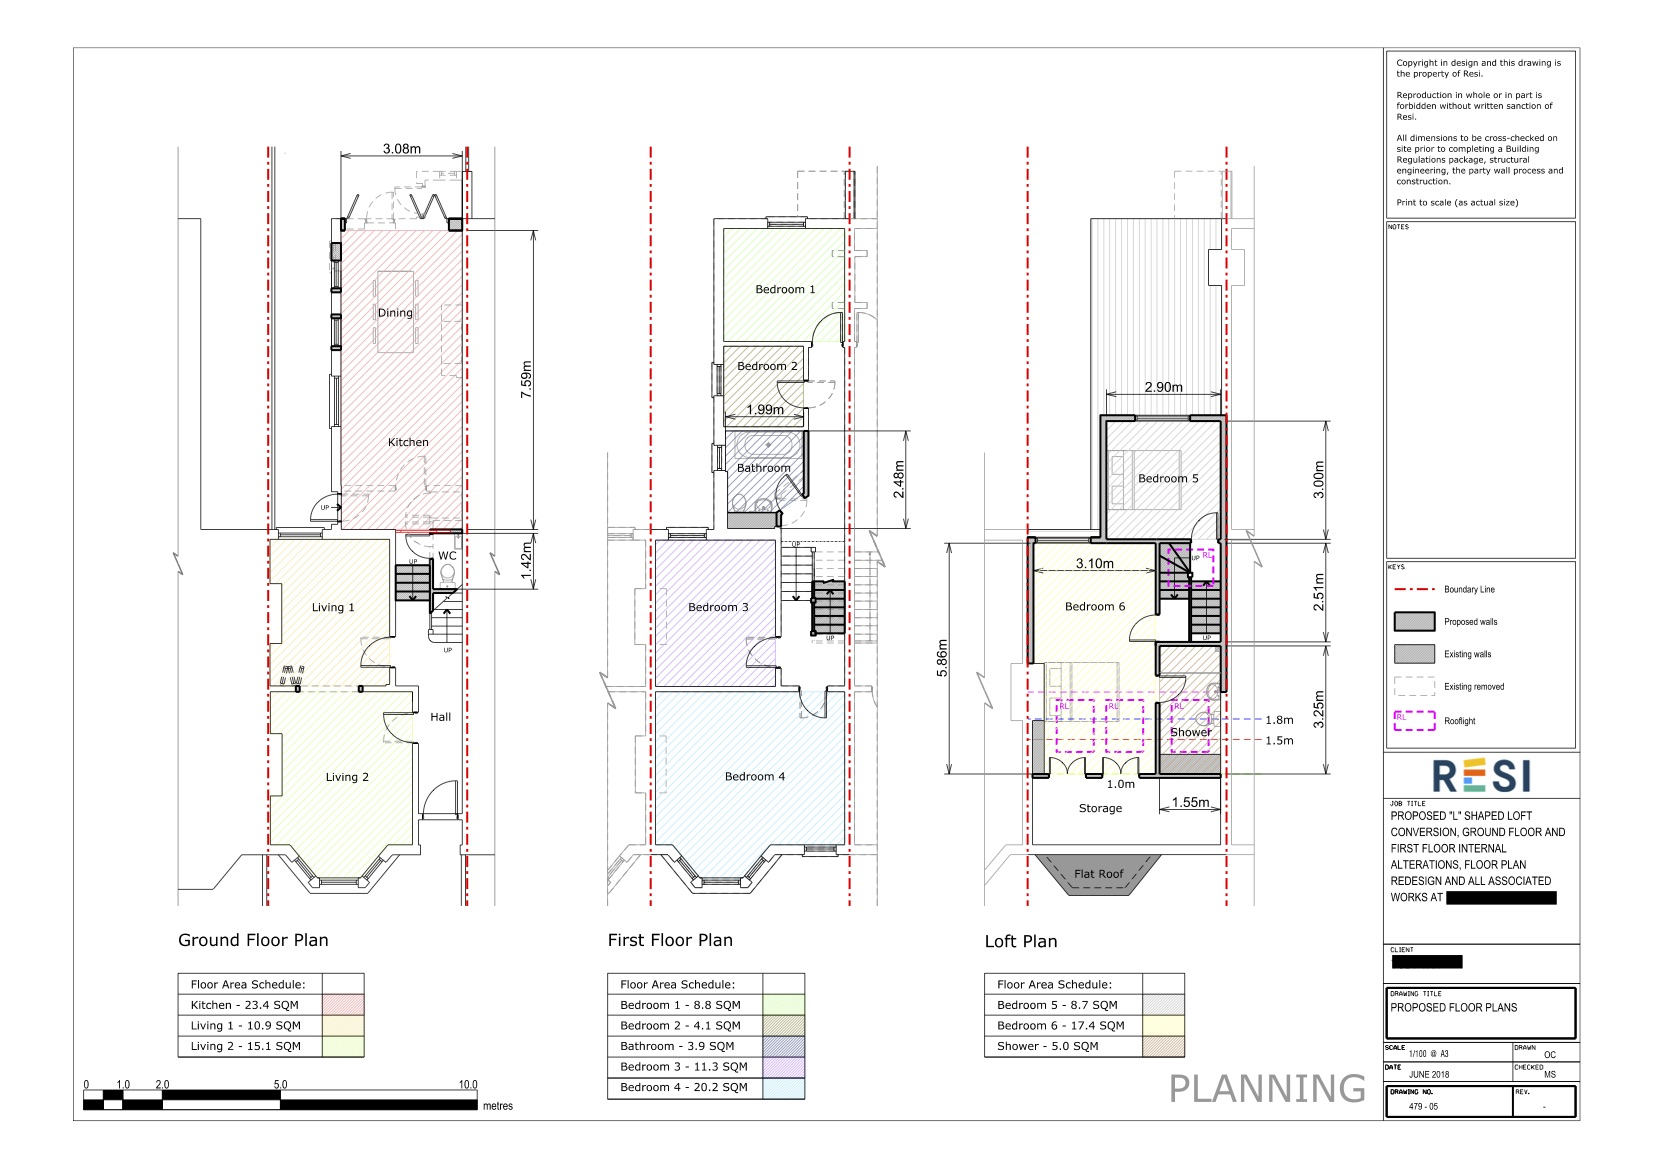 Architectural drawings 32   ground  first floor  and loft plans